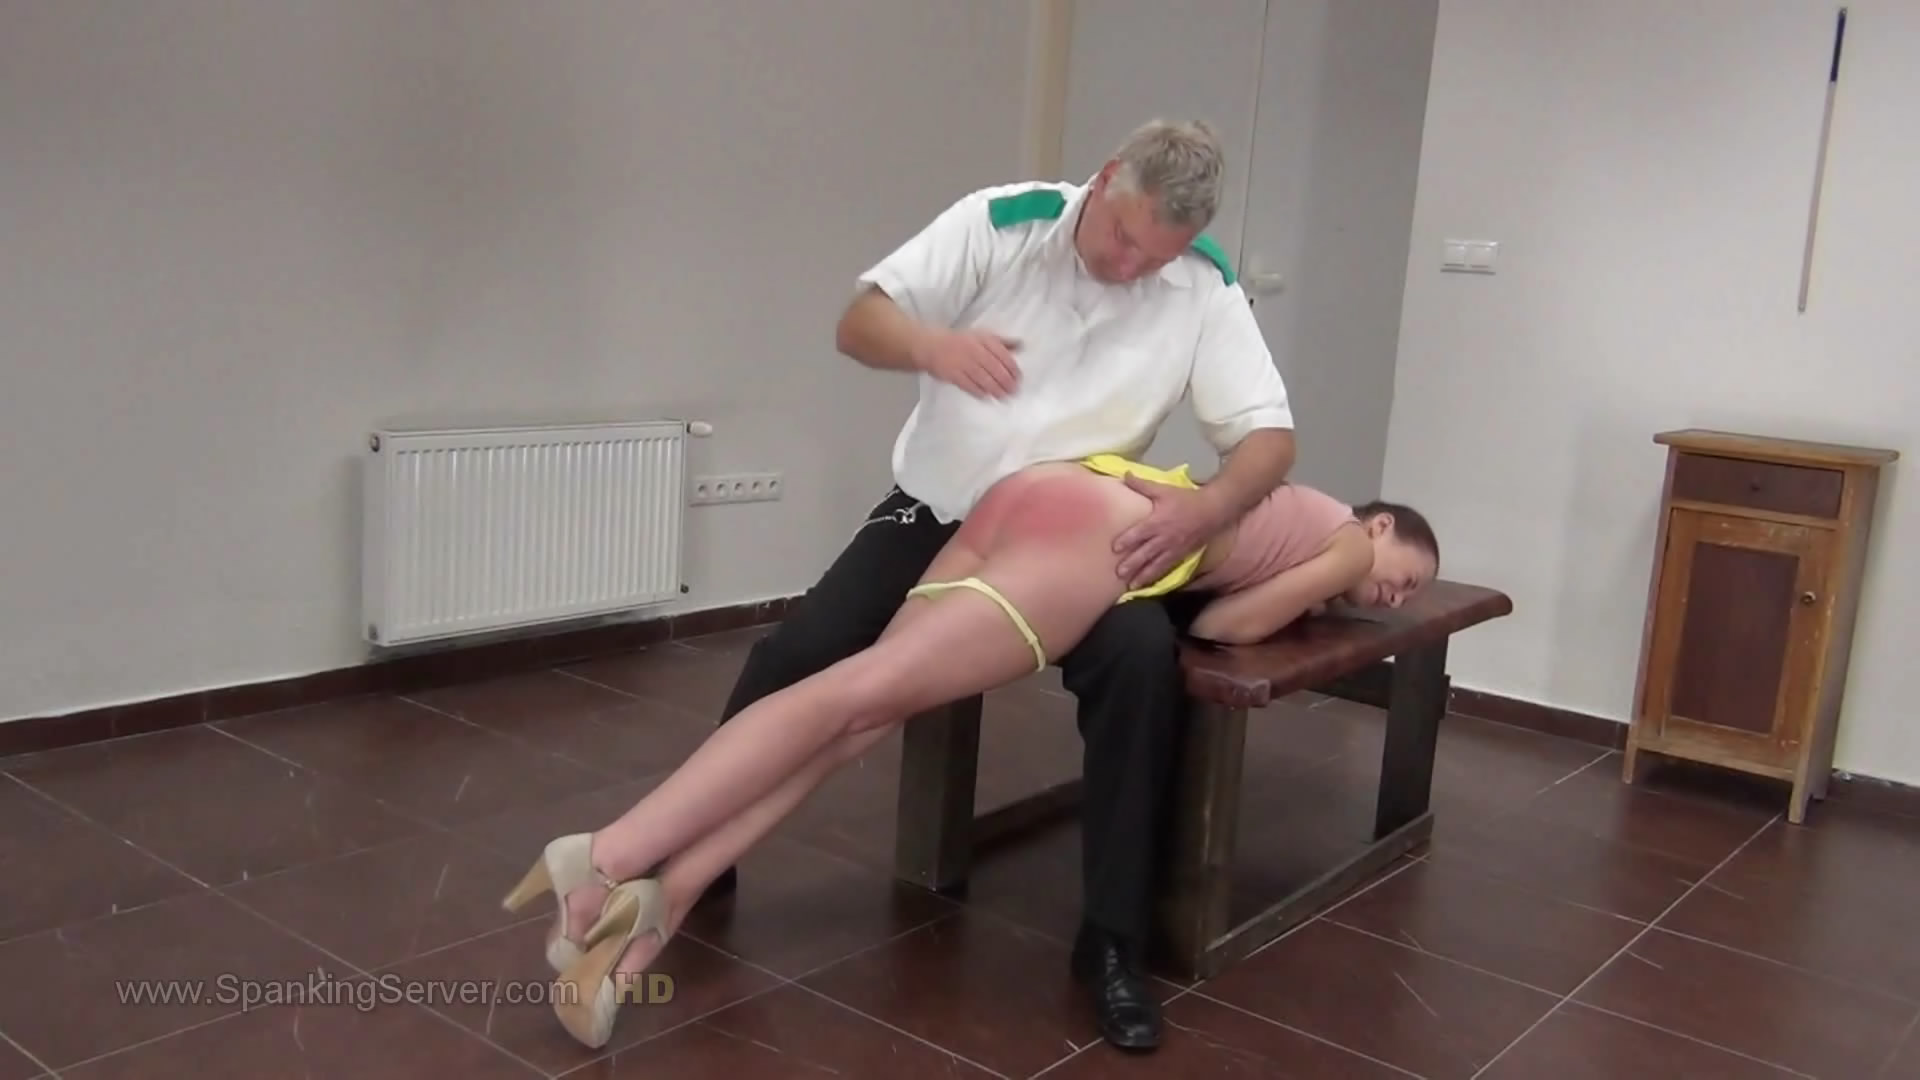 Spanking Server – MP4/Full HD – Chelsy 4318